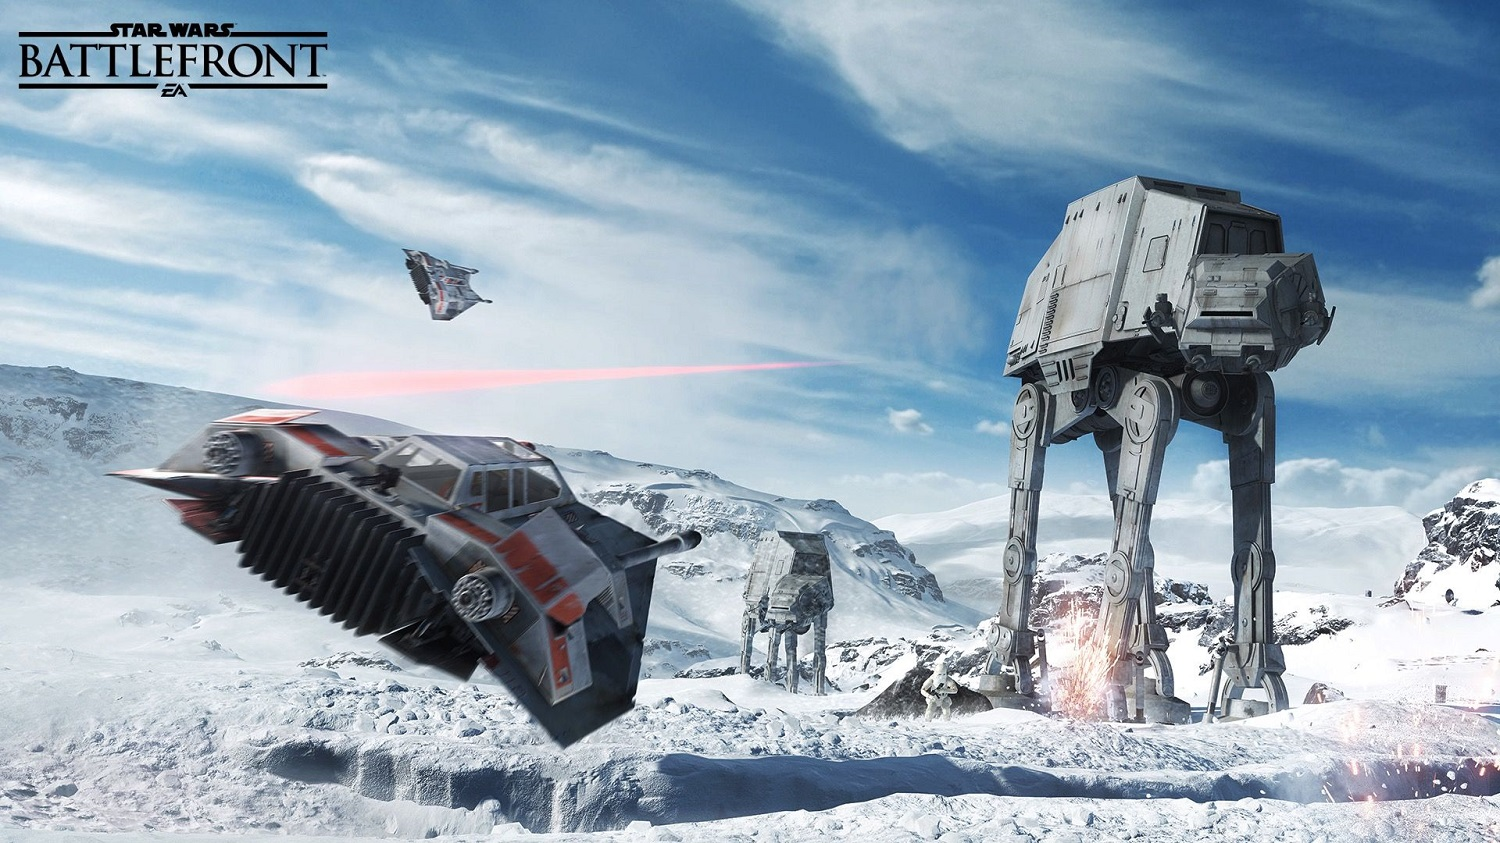 Star_Wars_Battlefront__4-17_A-2040.0